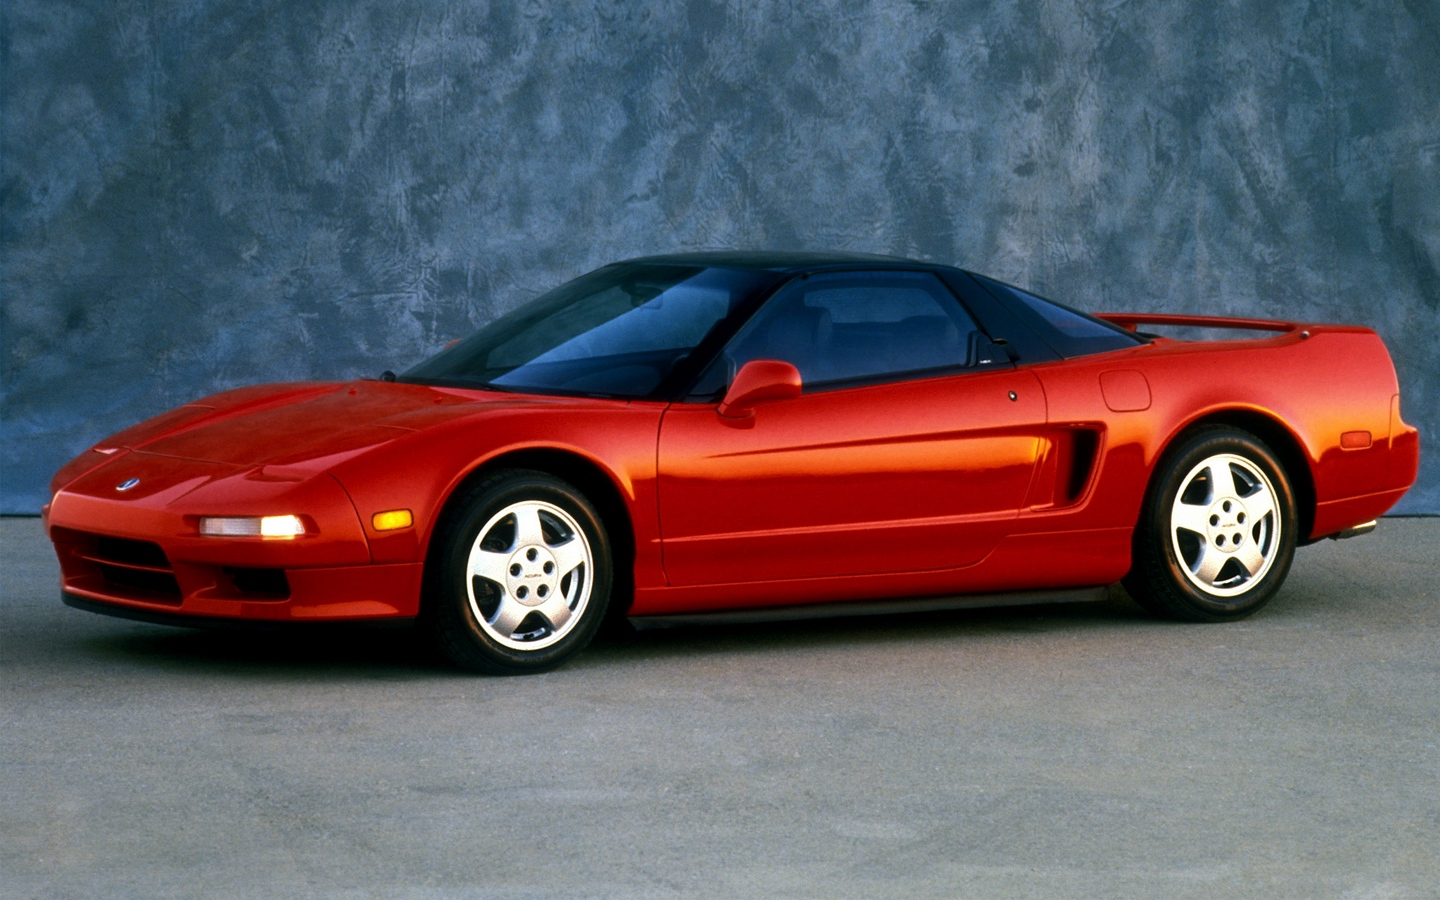 Acura NSX 1990 acura_nsx_red_sports_side_view_auto_style_13531_1440x900